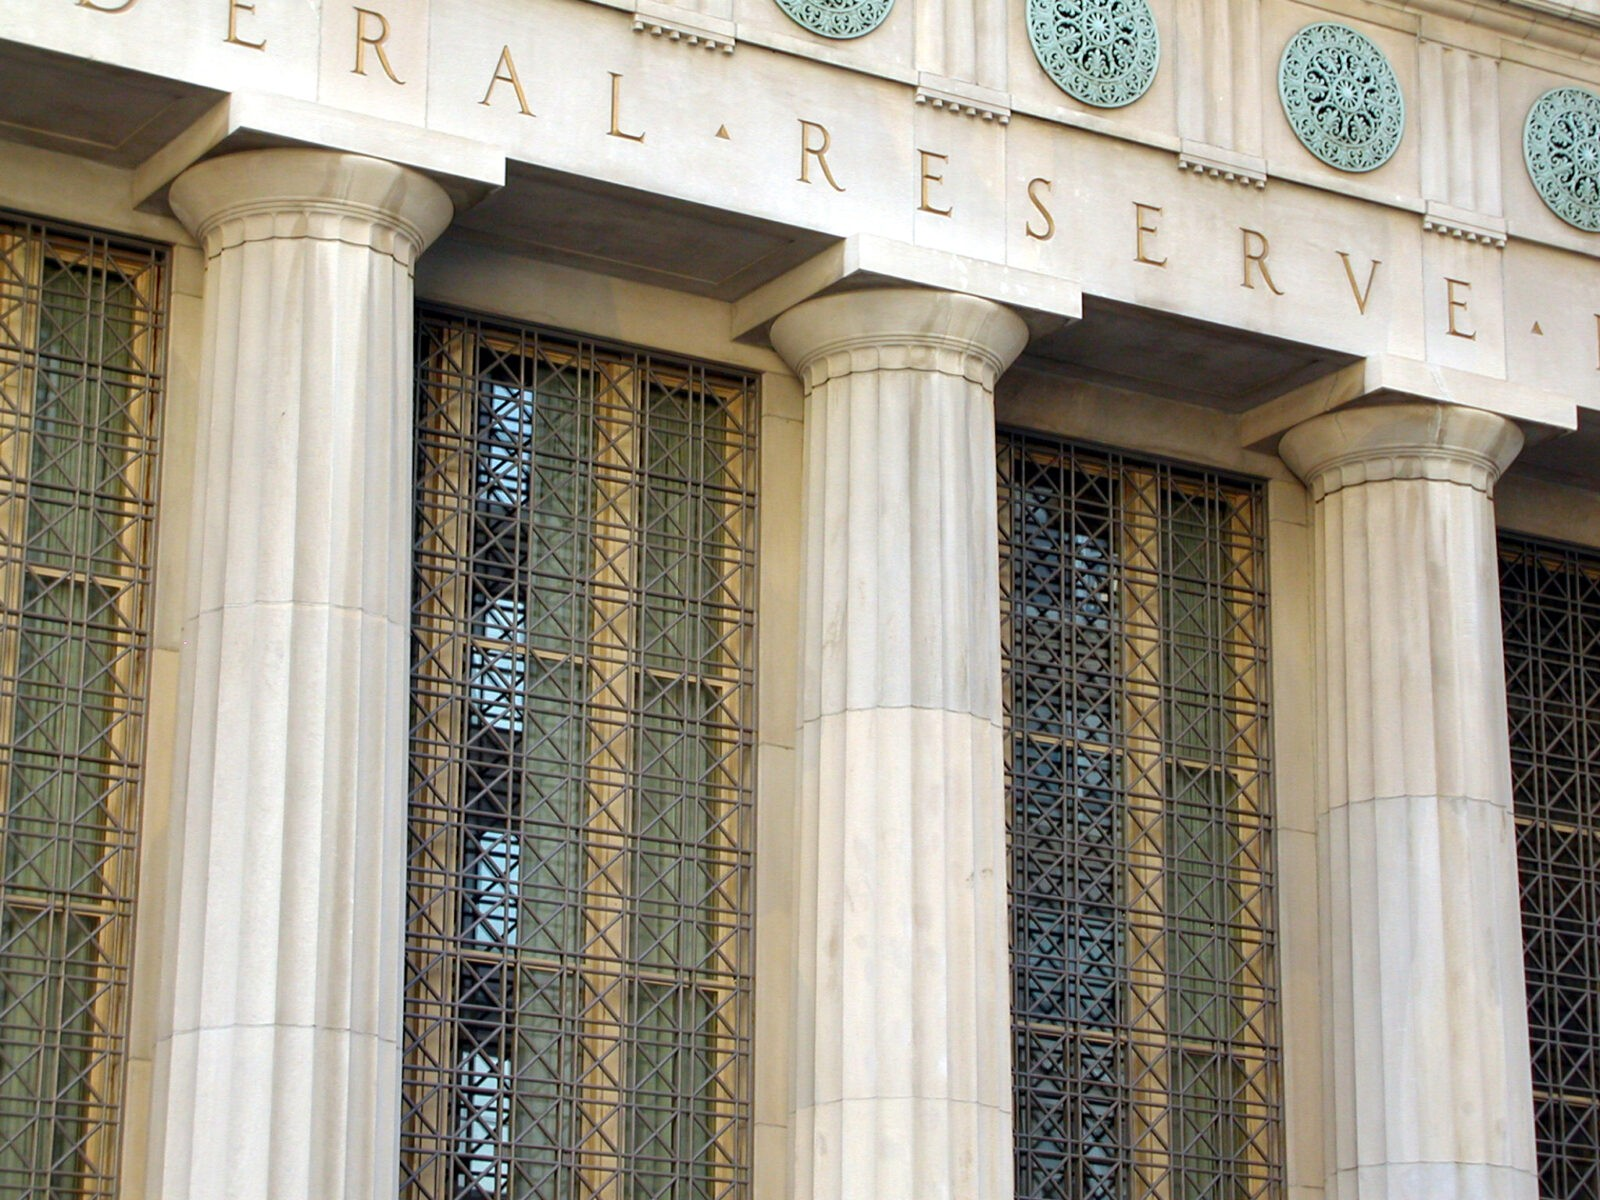 Federal Reserve, Washington DC